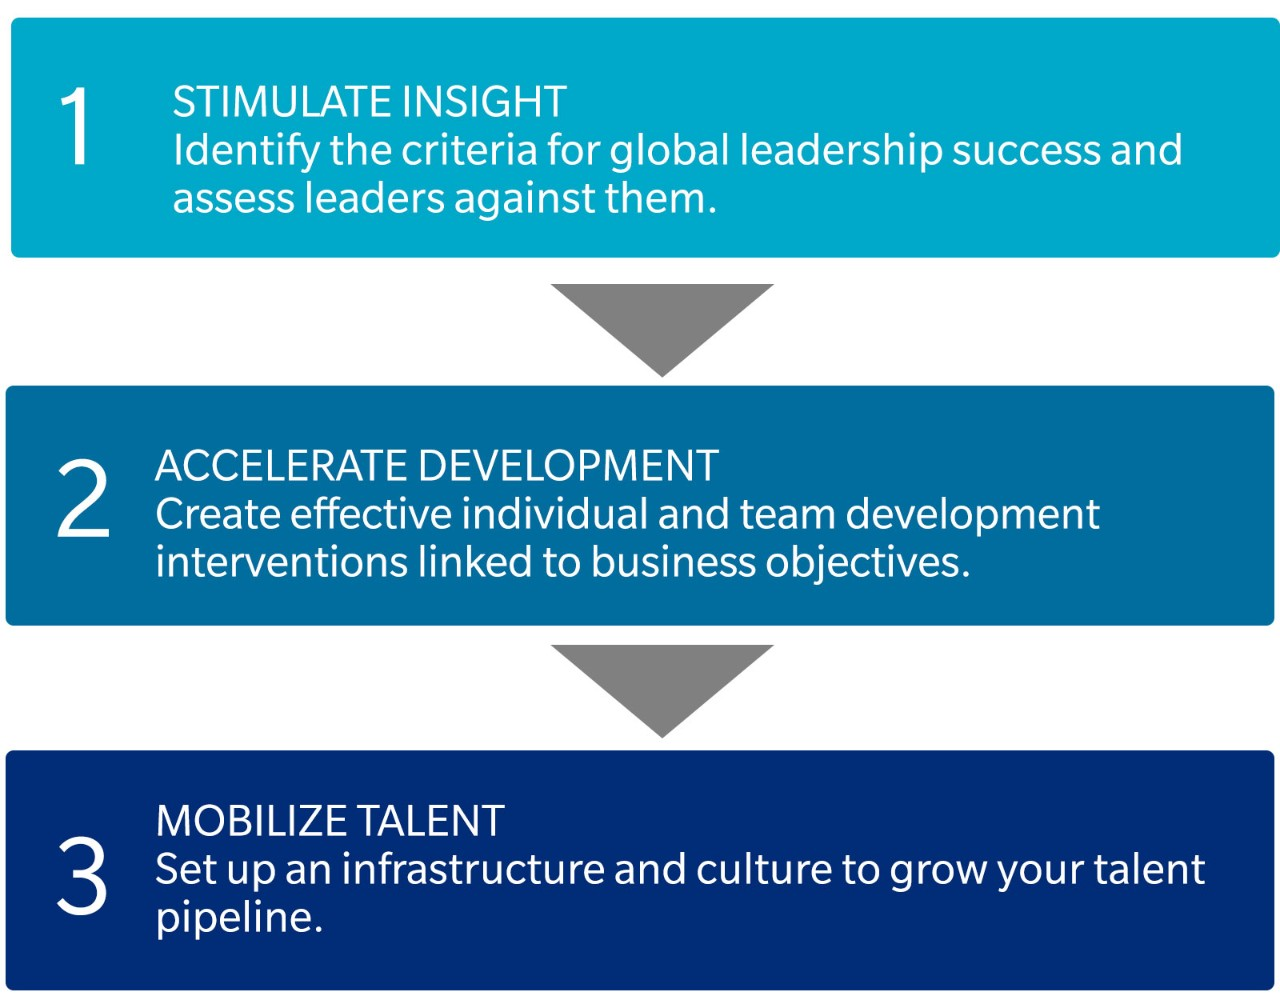 3 steps for successful global leadership